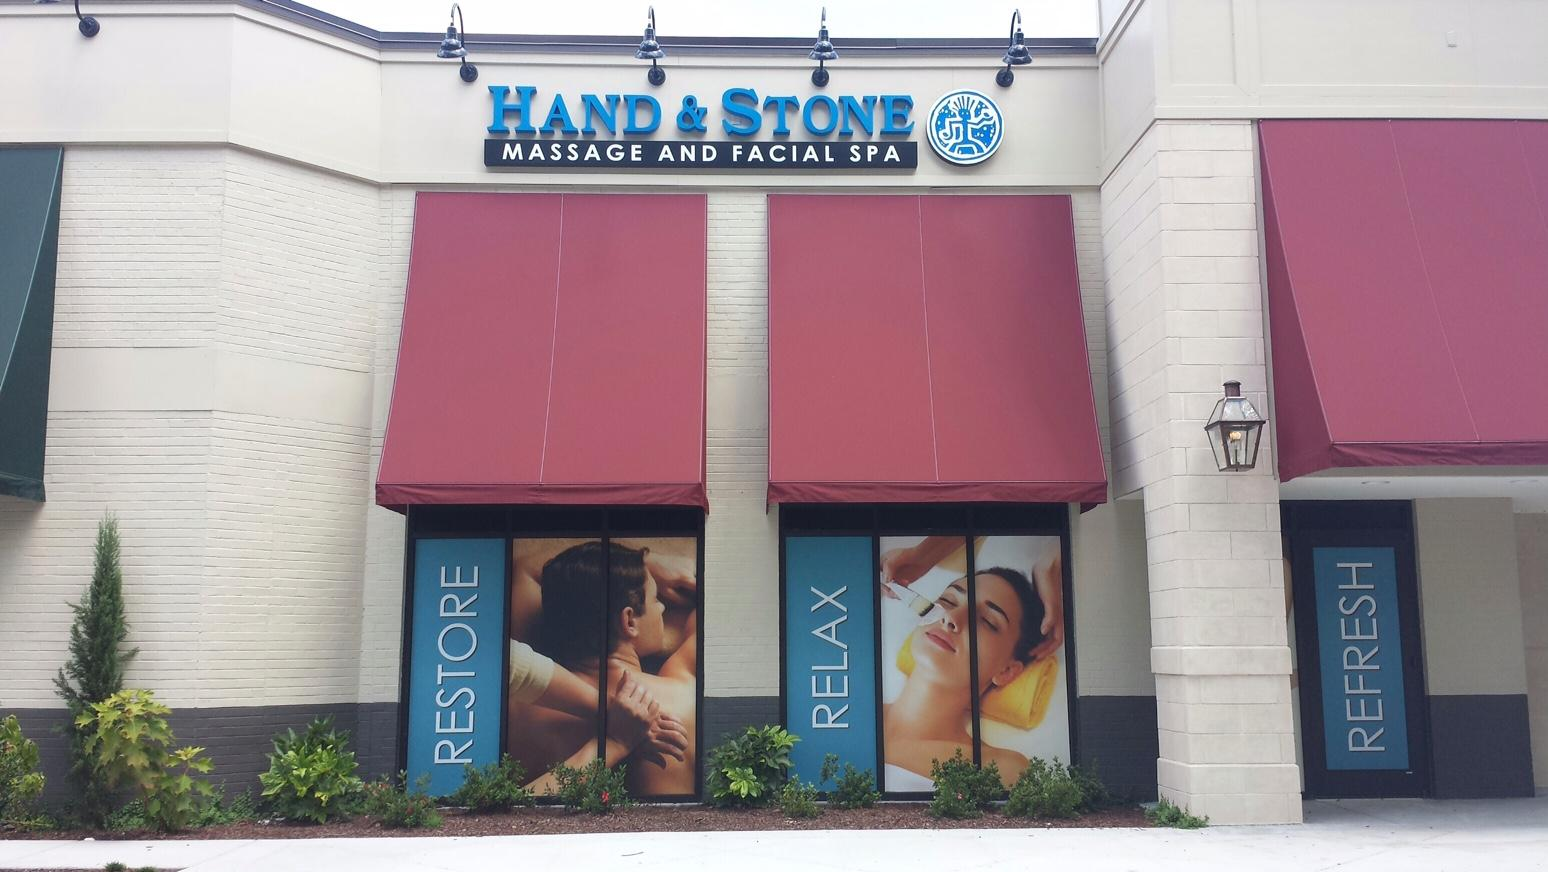 Hand & Stone - 43A Pinecrest Plaza in Southern Pines!